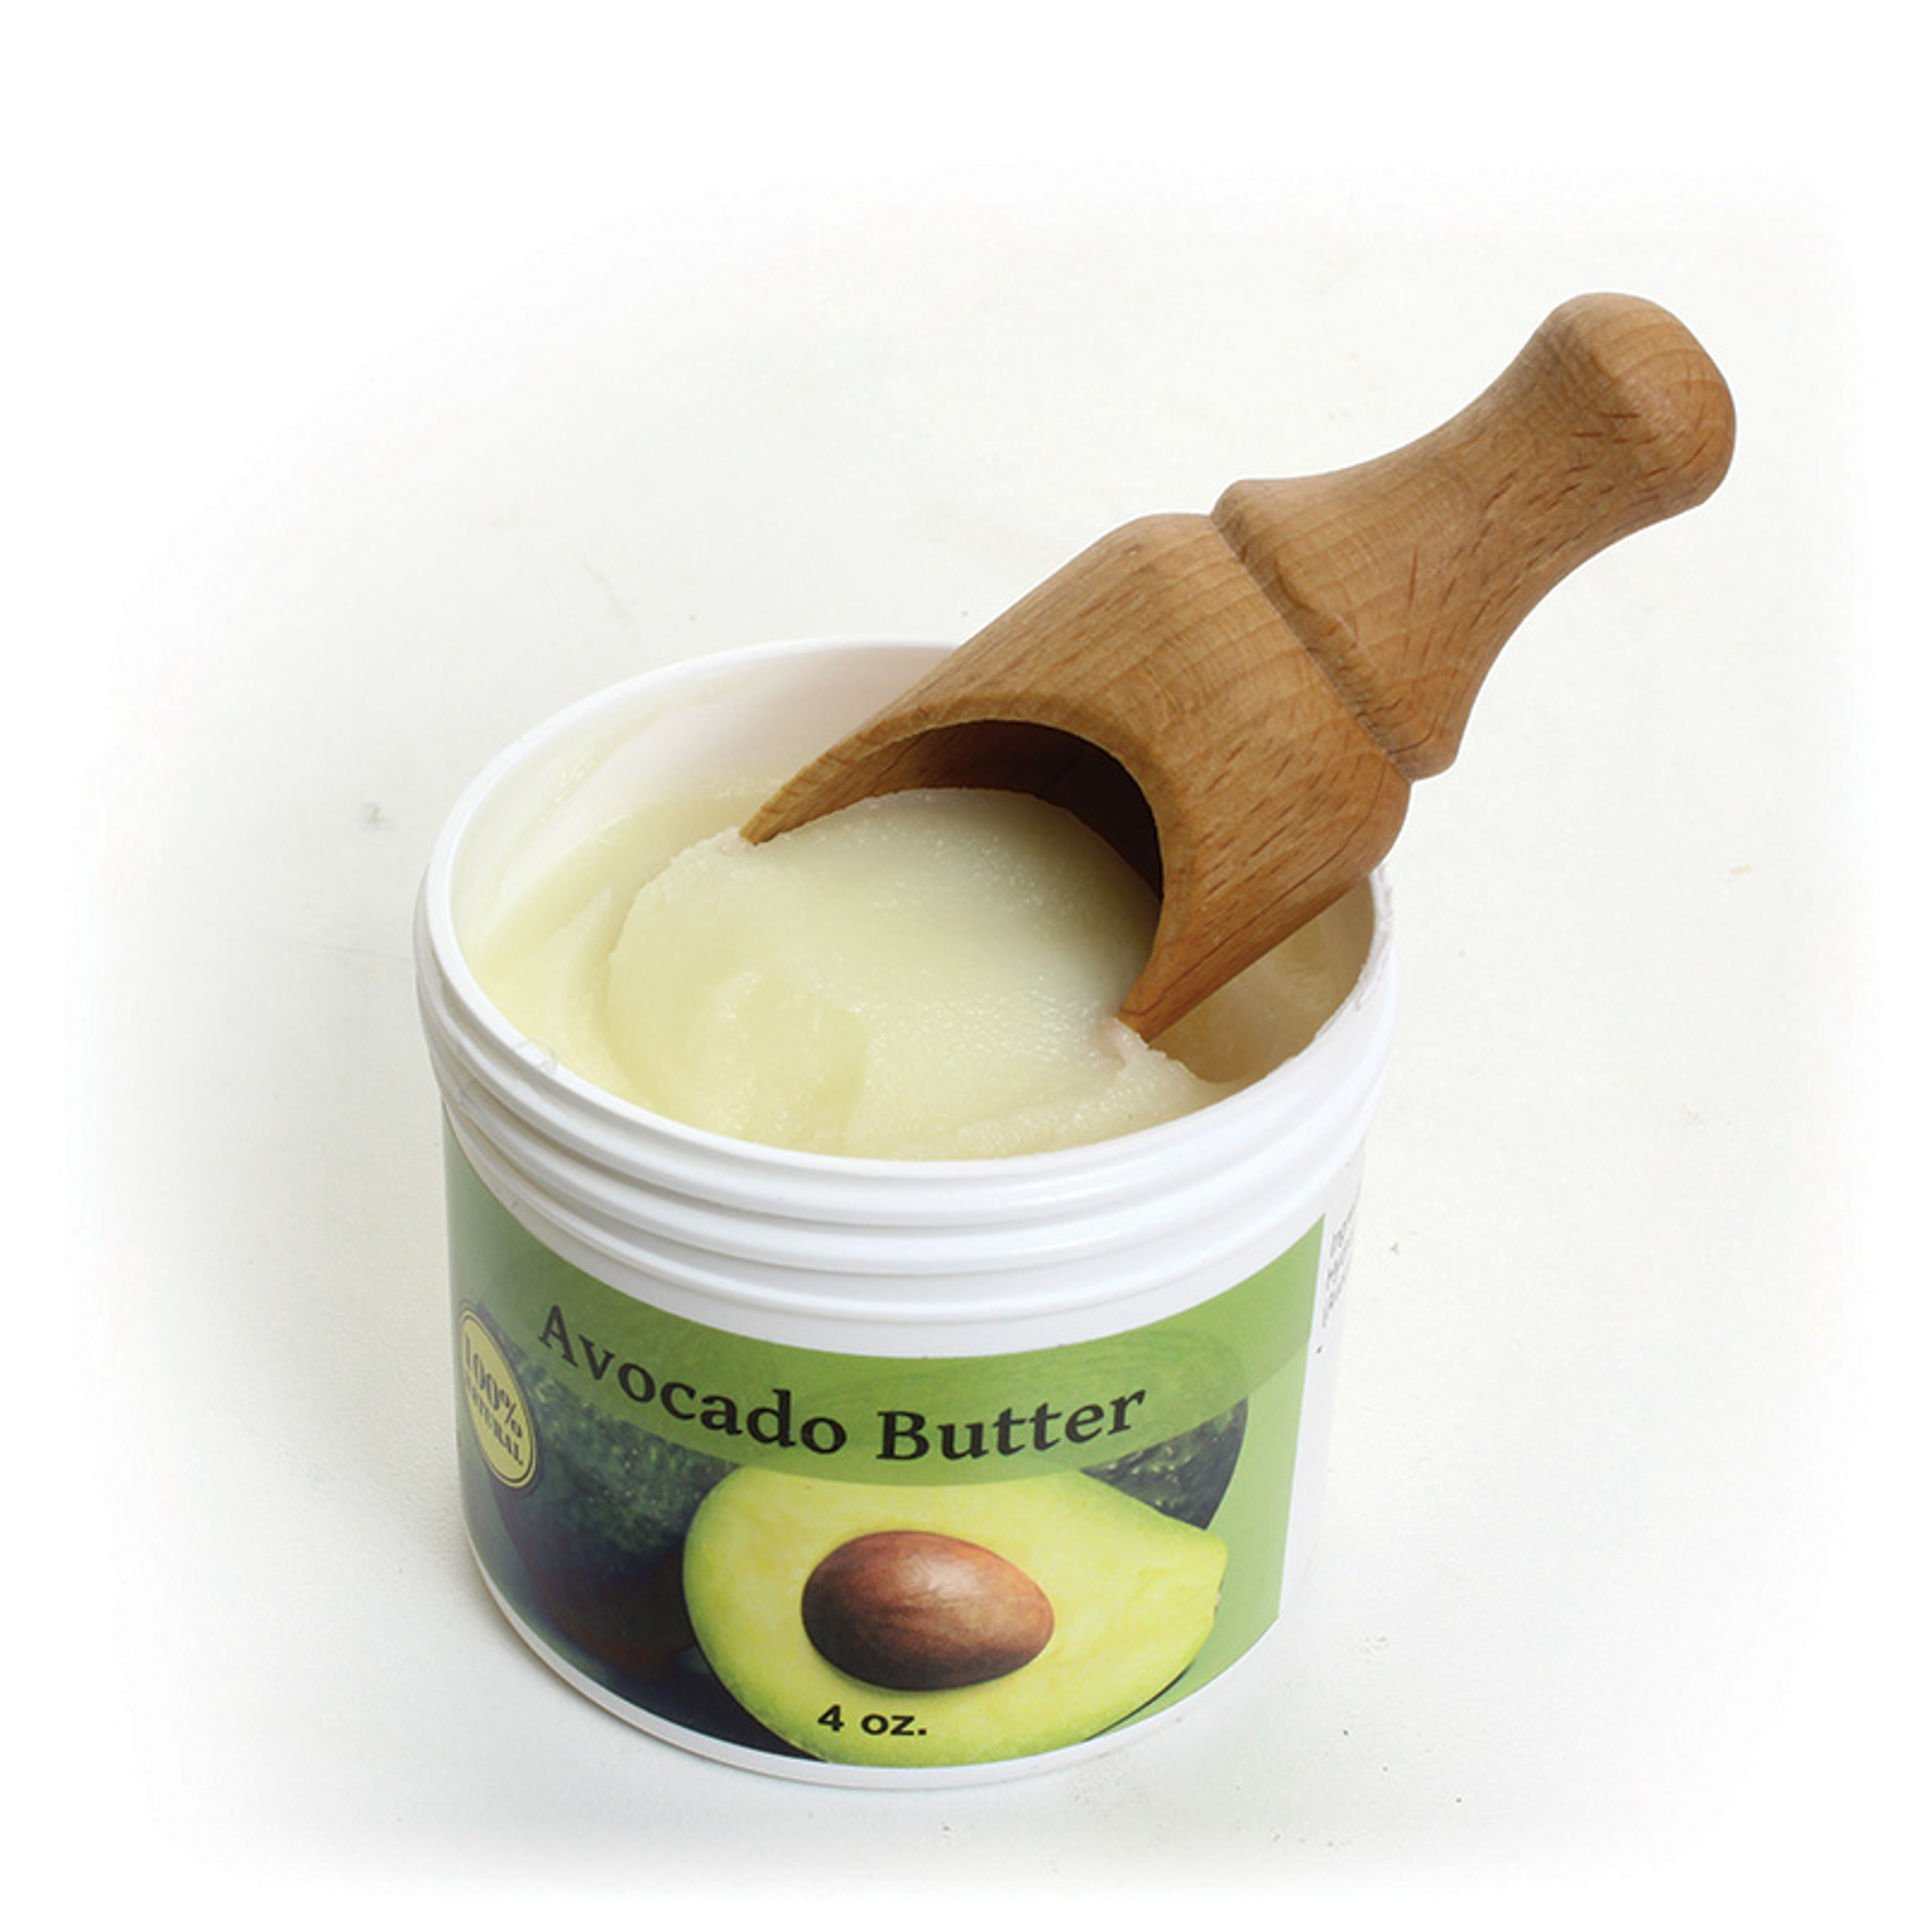 Picture of Avocado Butter - 4 oz.